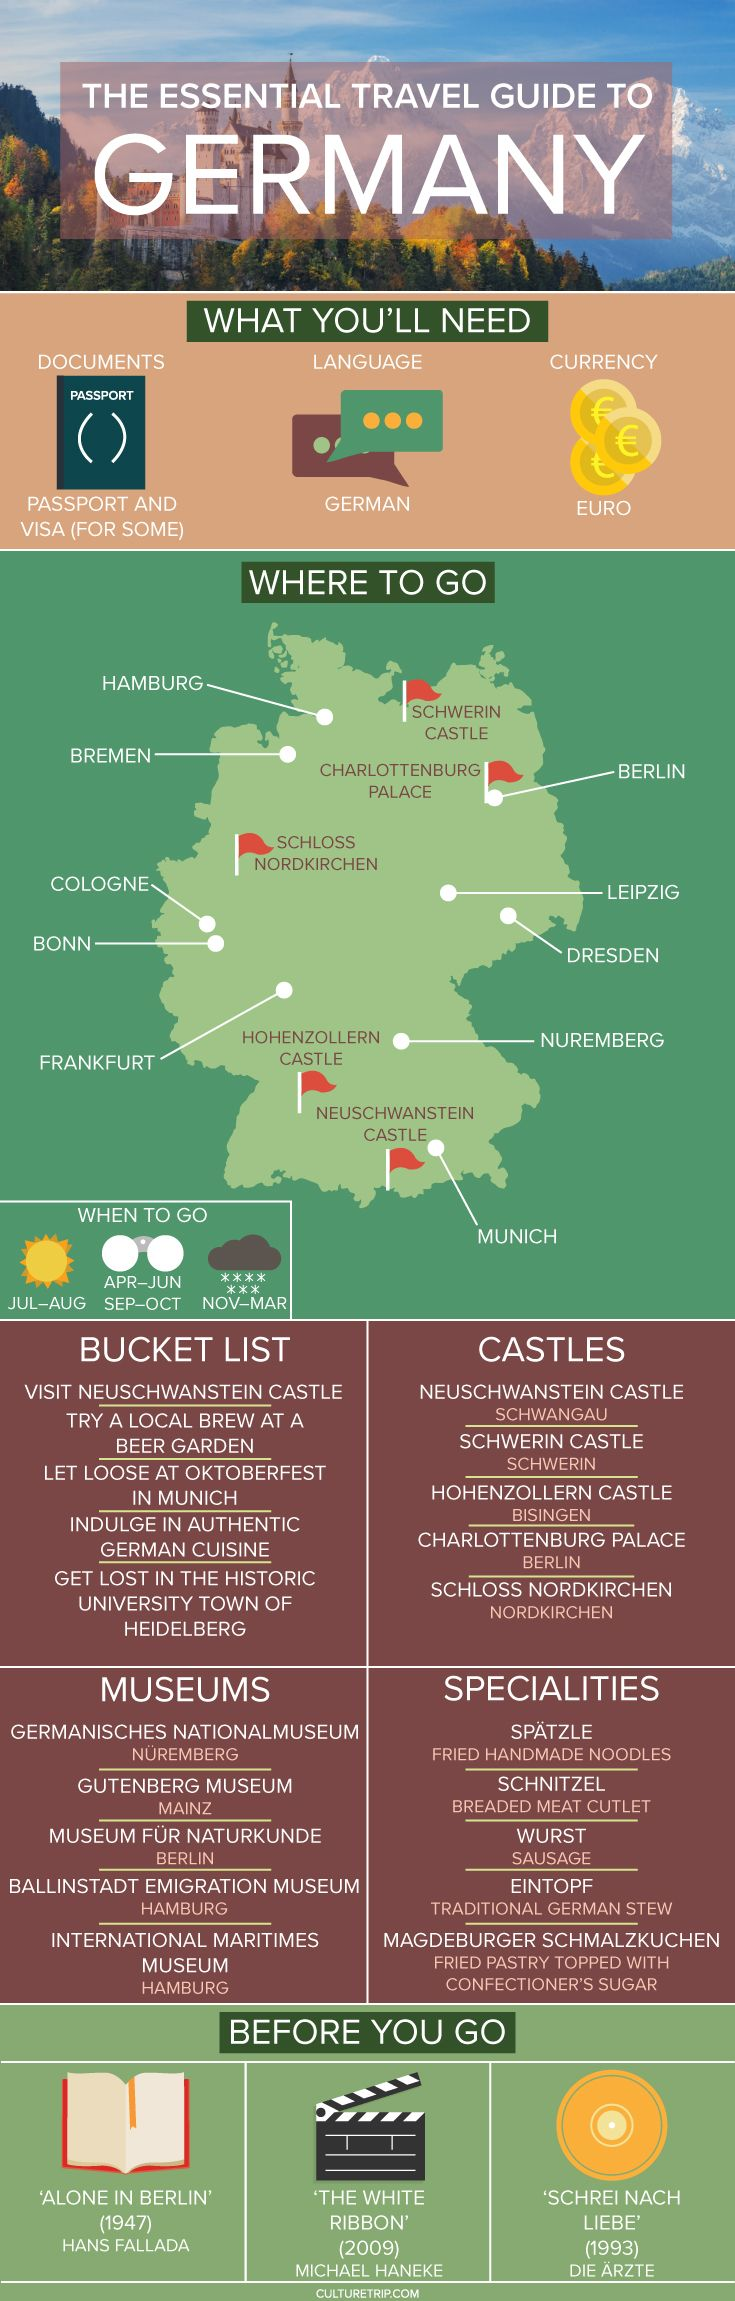 The Essential Travel Guide to Germany (Infographic)|Pinterest: theculturetrip